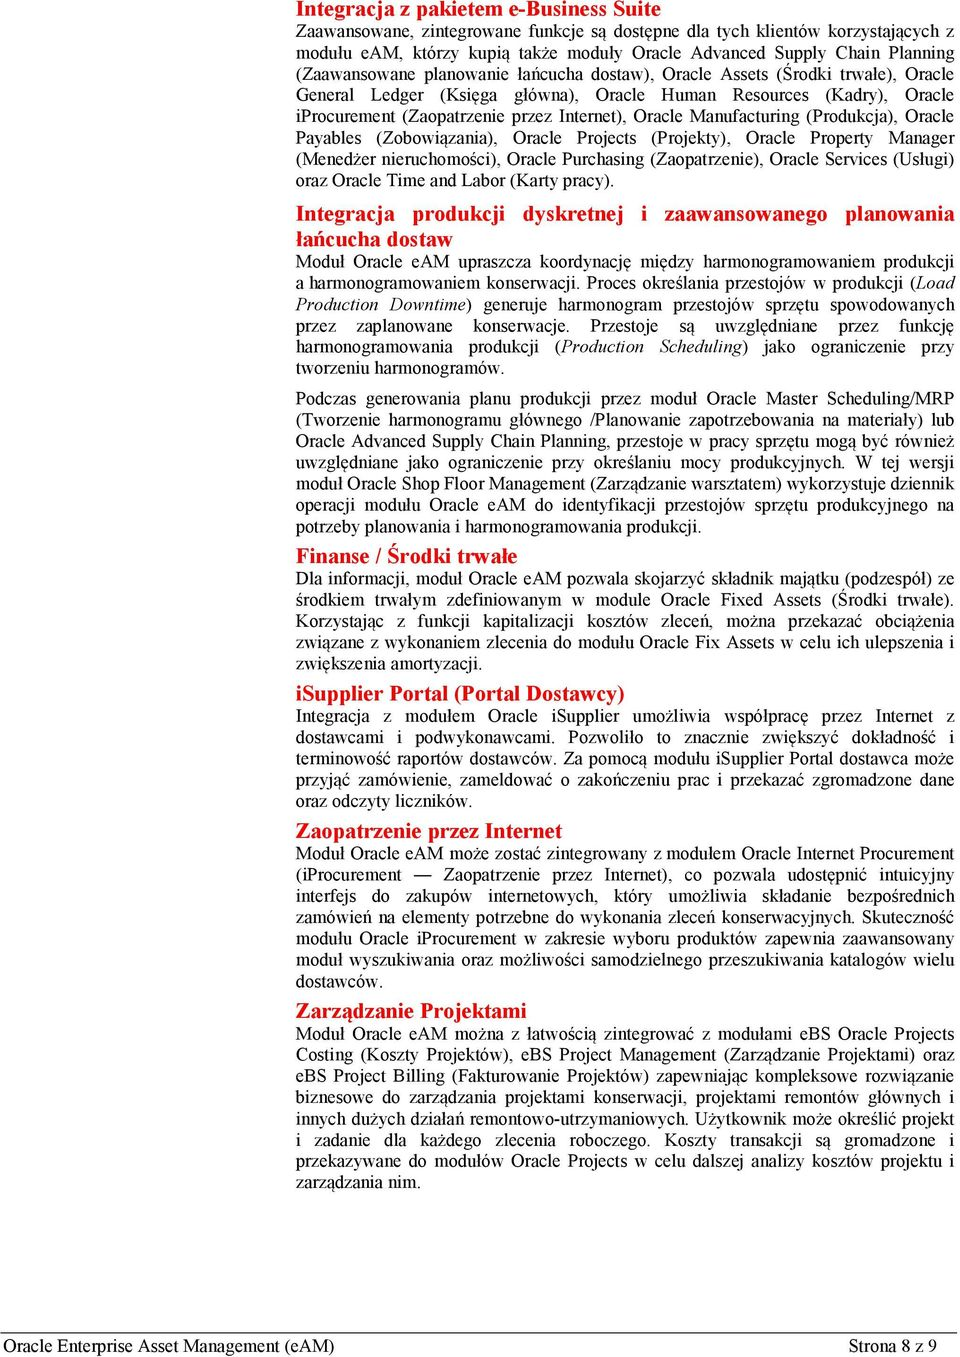 Oracle Manufacturing (Produkcja), Oracle Payables (Zobowiązania), Oracle Projects (Projekty), Oracle Property Manager (Menedżer nieruchomości), Oracle Purchasing (Zaopatrzenie), Oracle Services